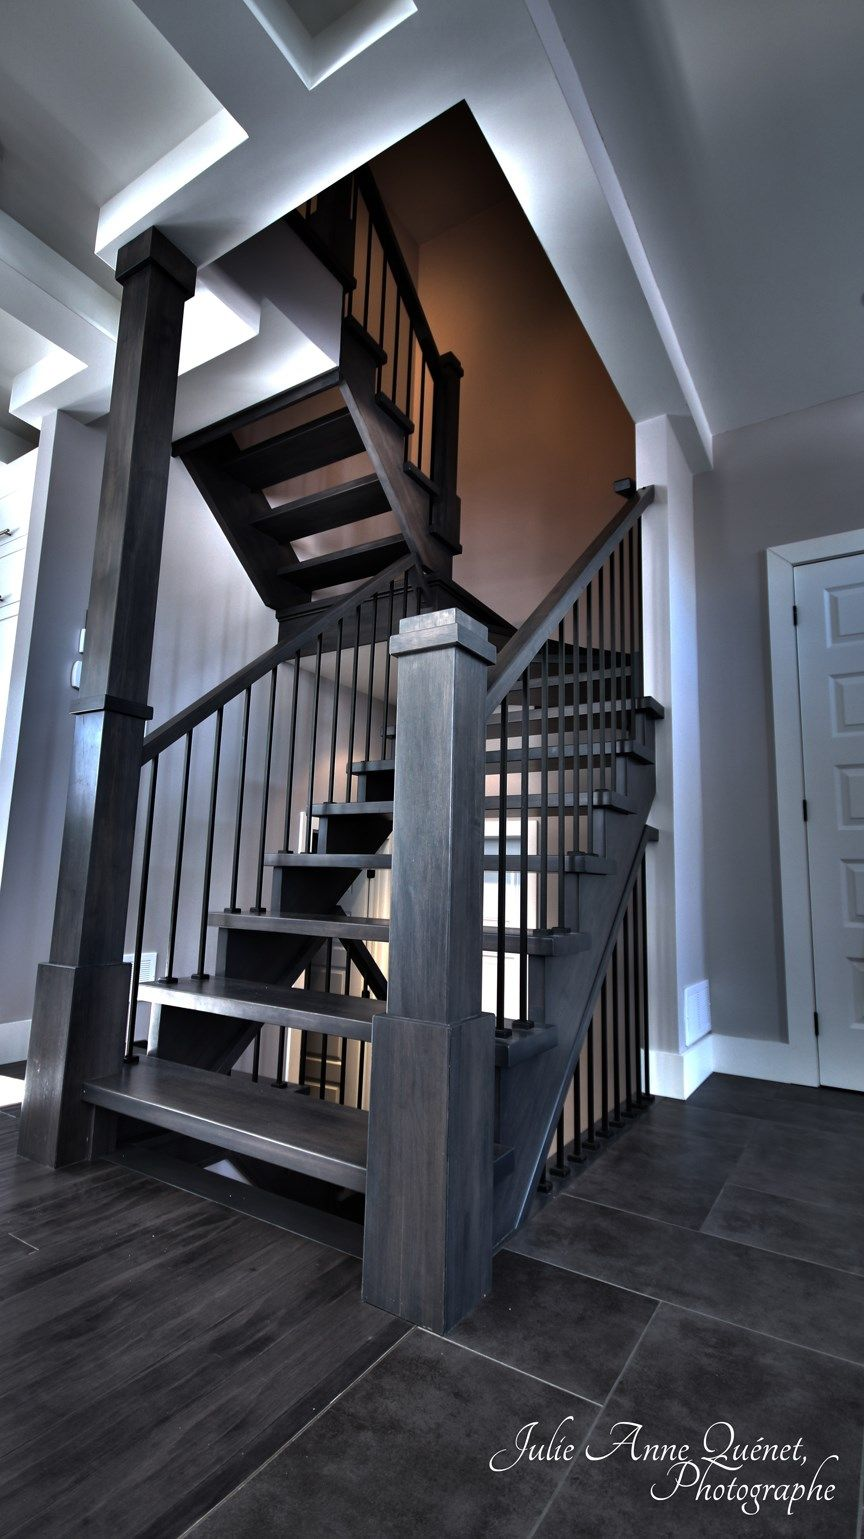 Jp Rochefort Fabrication Distribution Et Installation D Escaliers Rampes Moulures Sur Mesure A Victoriaville Balcony Railing Wooden Staircases Stairs